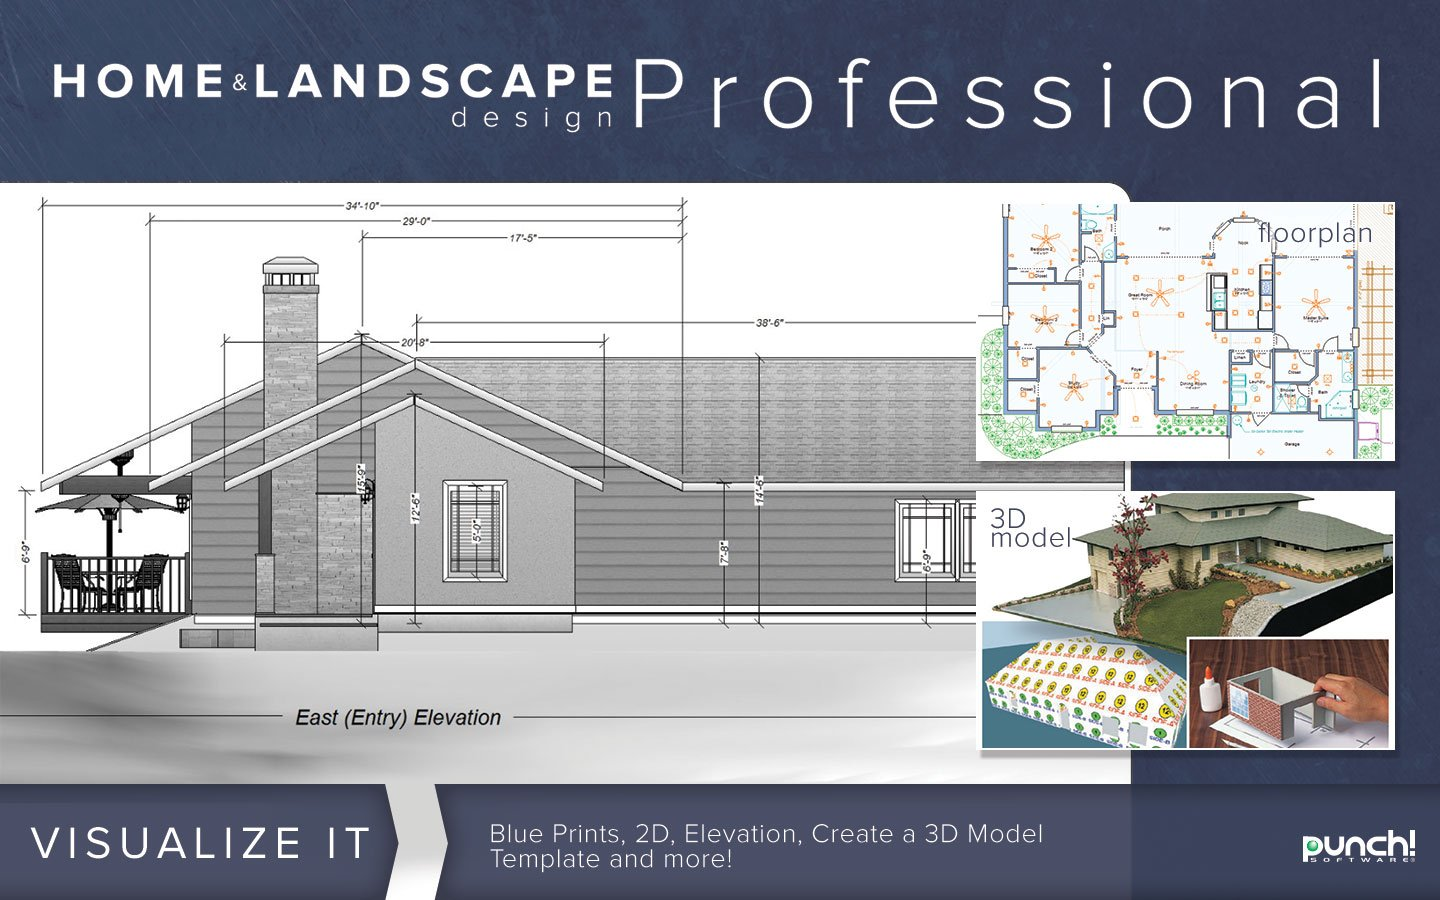 punch home landscape design professional v18 download